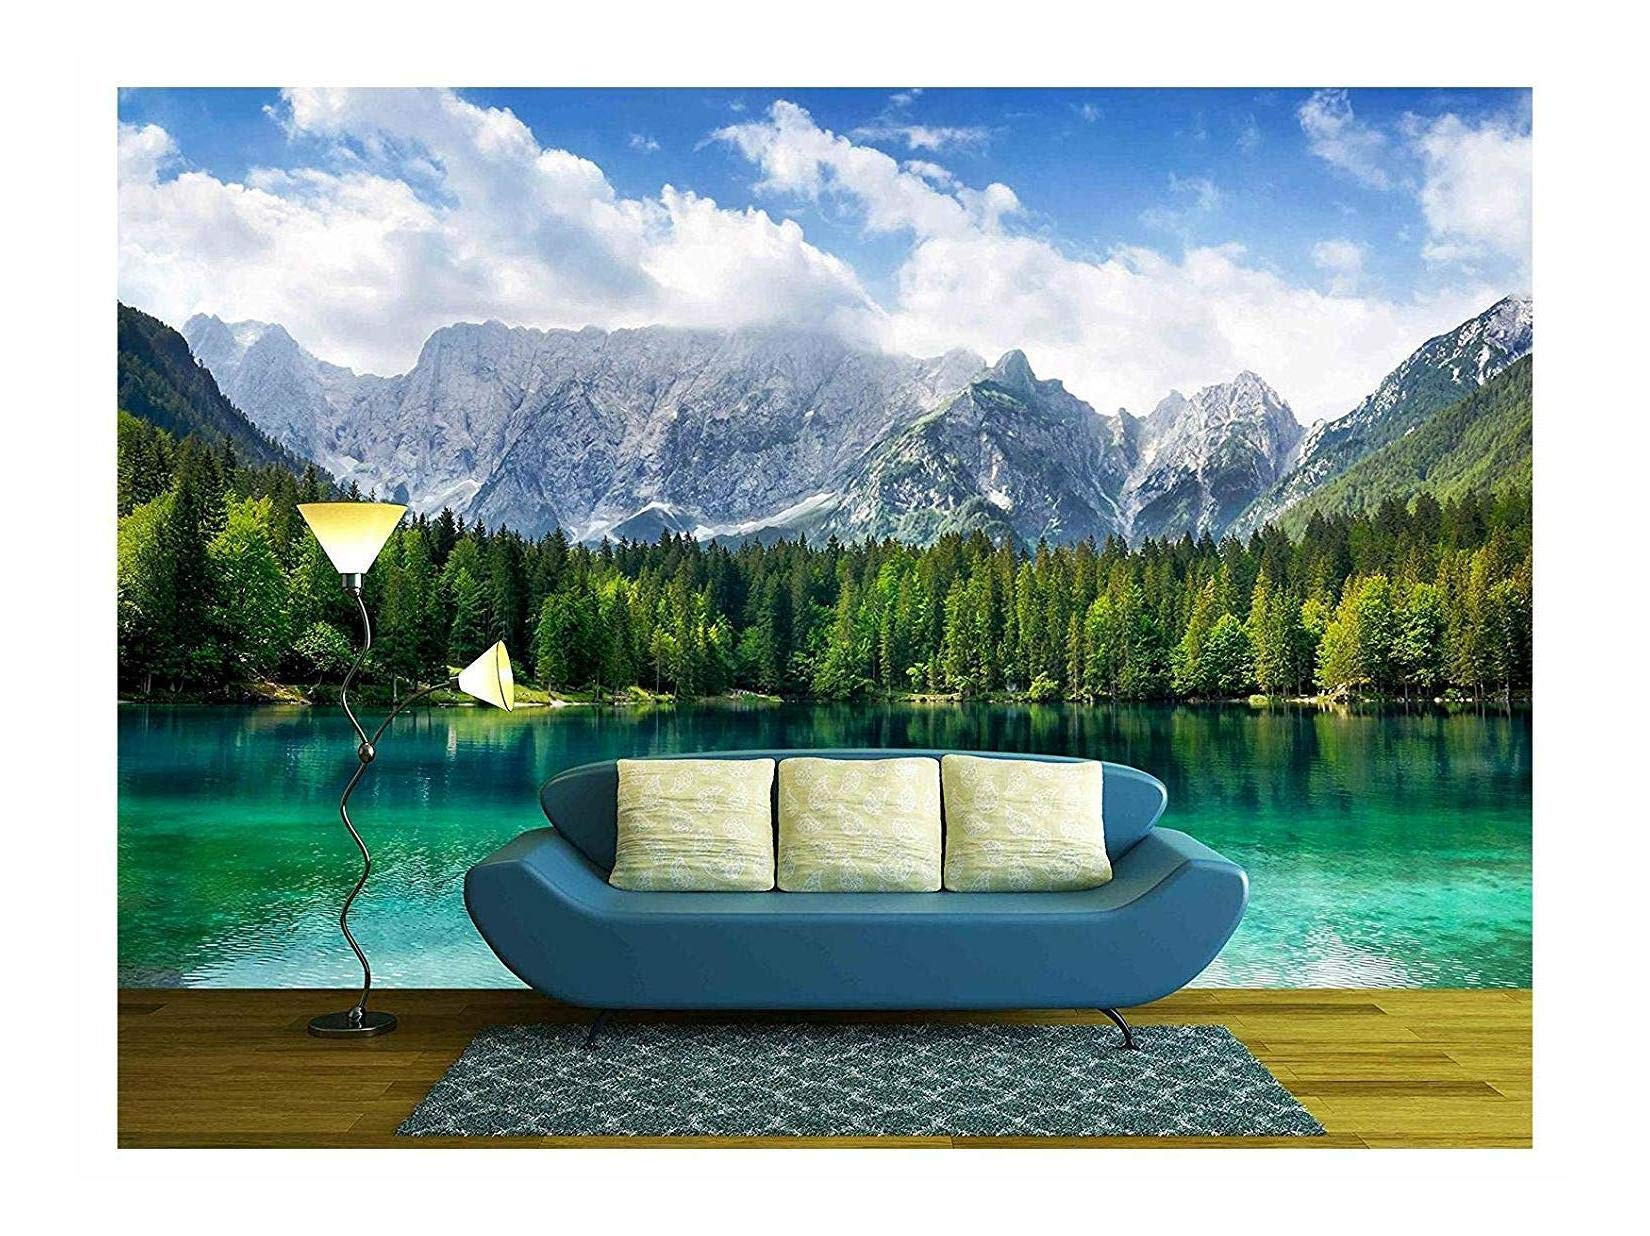 wall26 - Beautiful Landscape with Turquoise Lake, Forest and Mountains - Removable Wall Mural | Self-Adhesive Large Wallpaper - 100x144 inches by wall26 (Image #1)